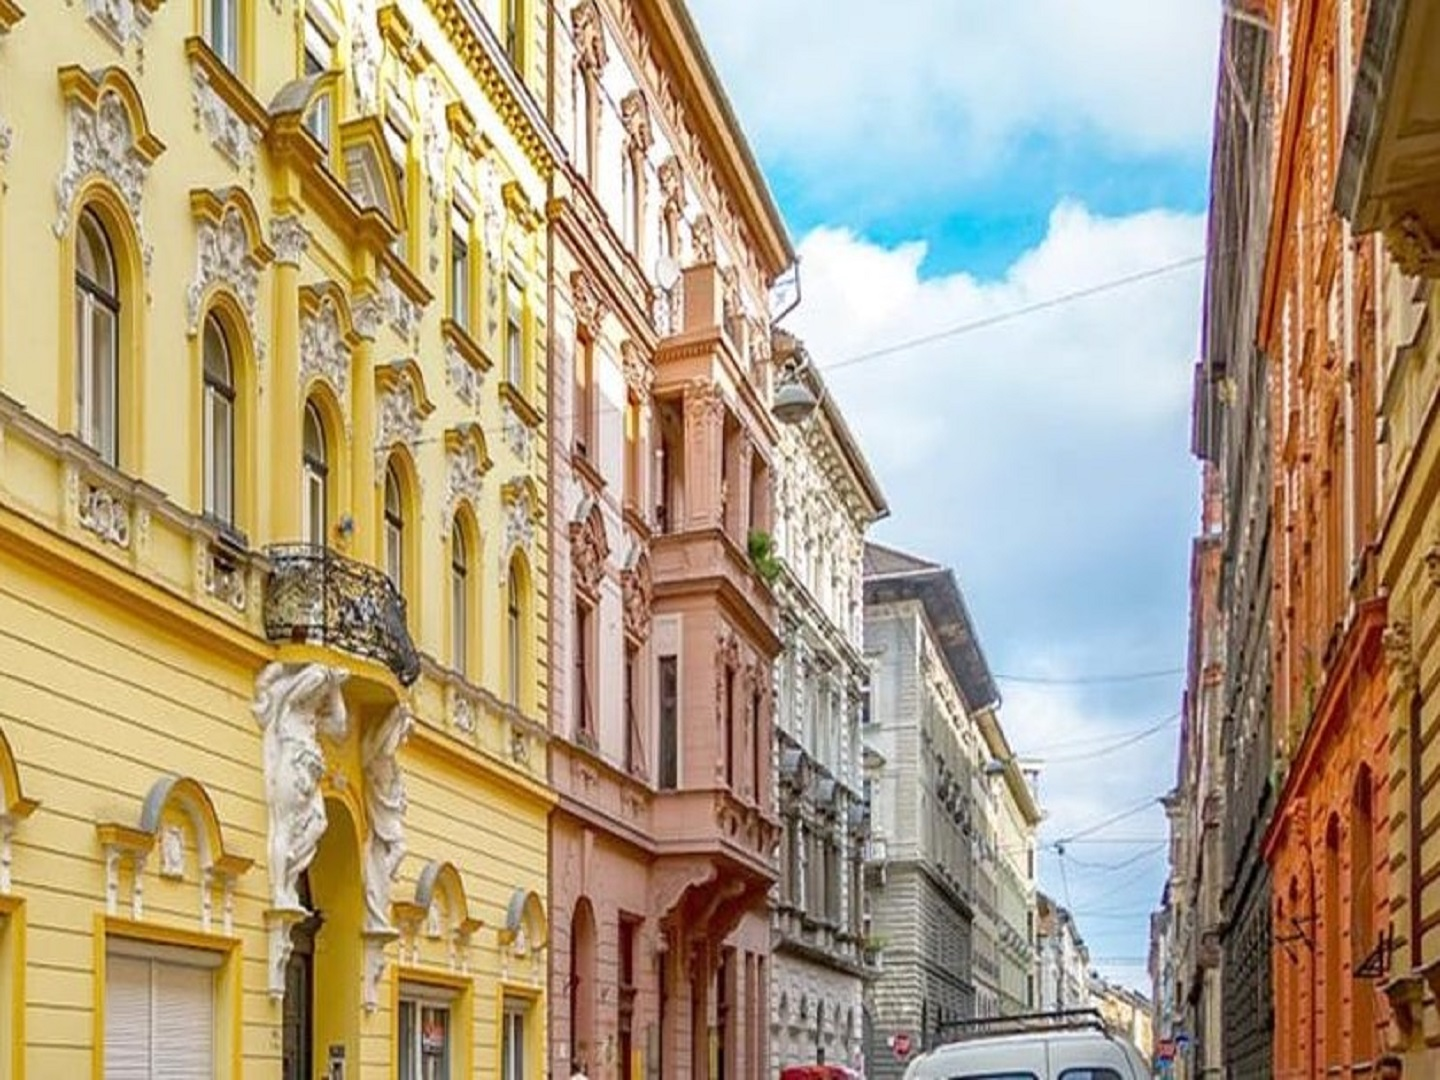 A narrow city street with buildings on the side of a building at Kapital Inn Budapest.